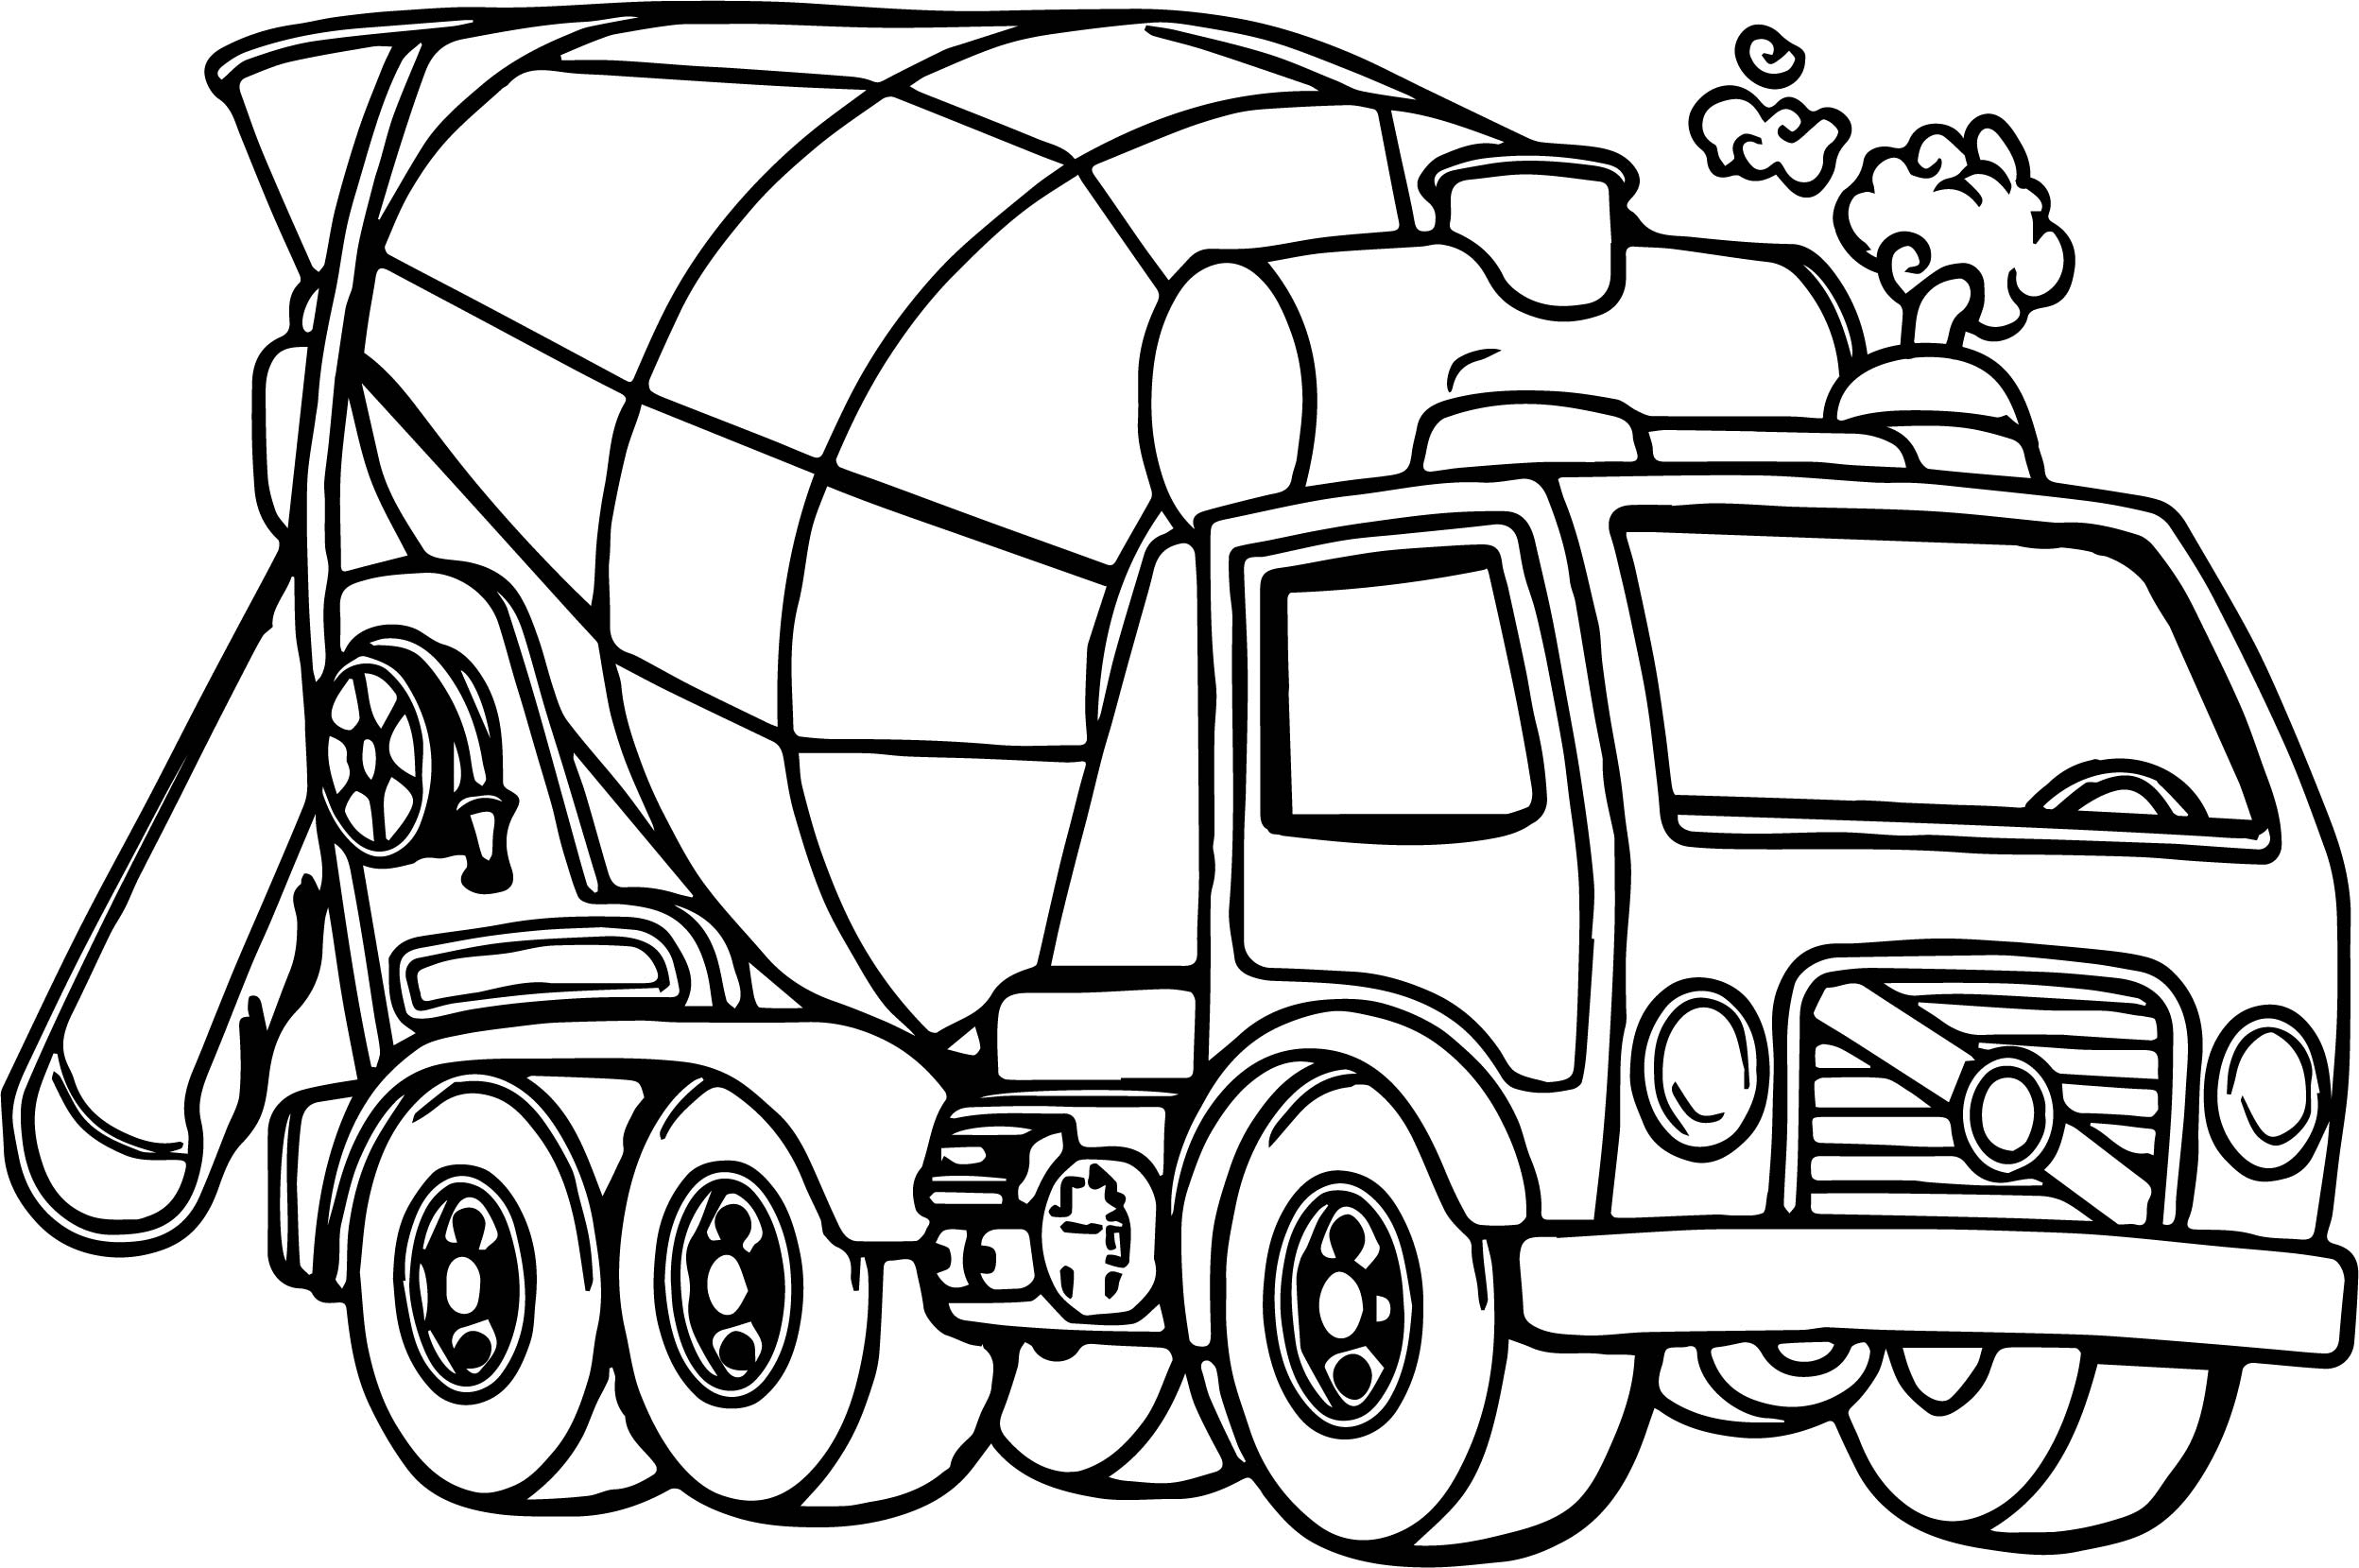 concrete mixer truck coloring pages - photo#11